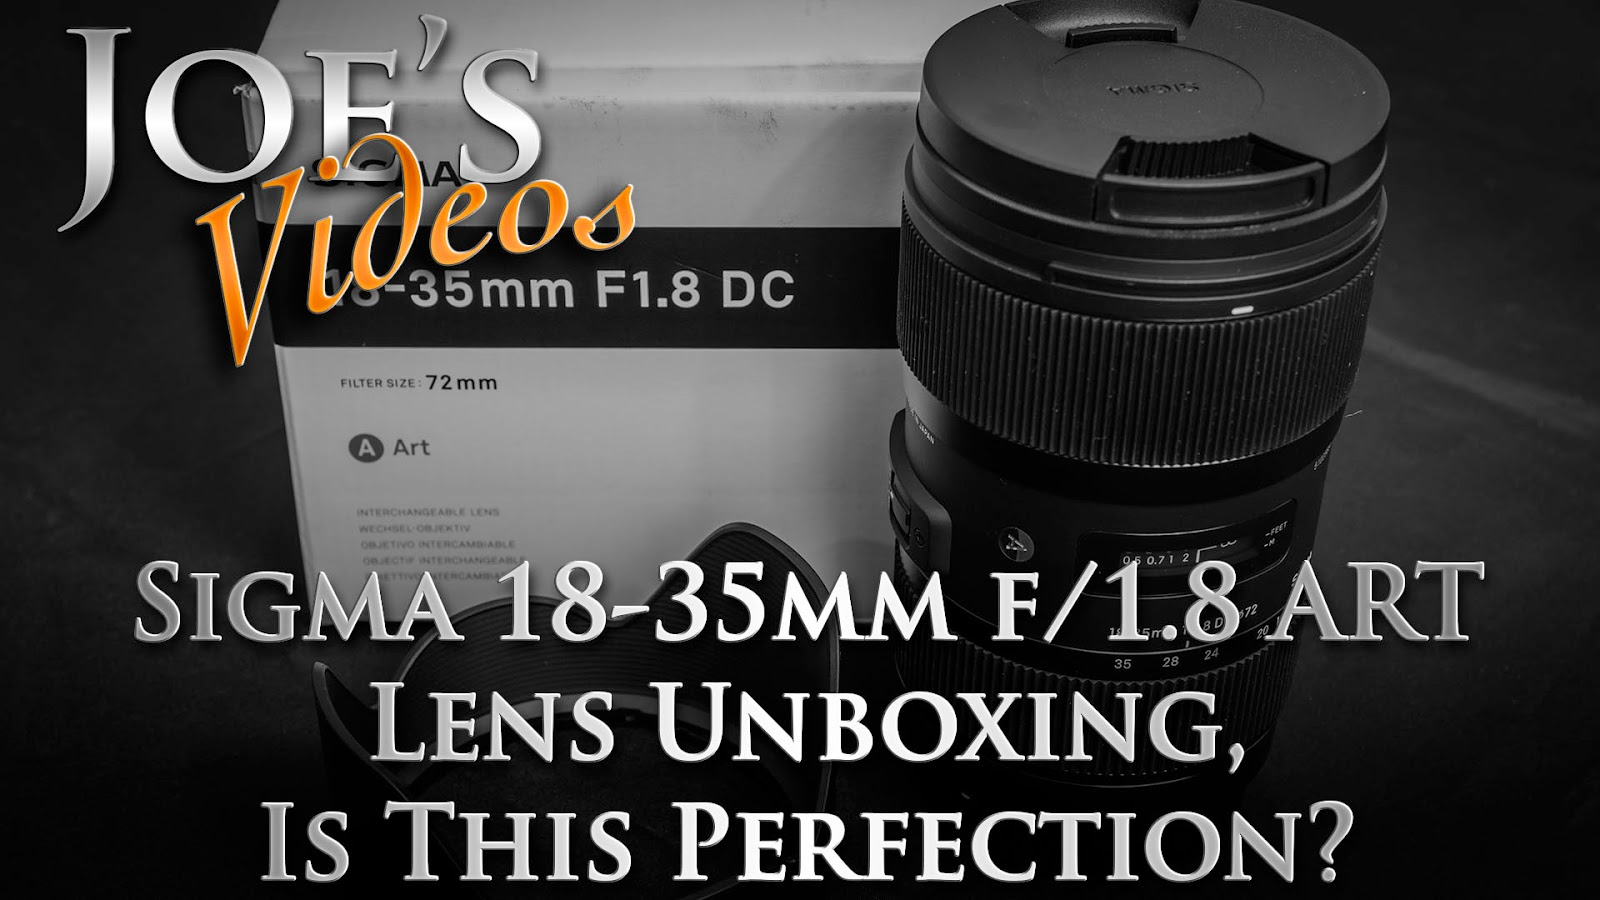 Sigma 18-35mm f/1.8 Art Lens Unboxing, Is This Perfection? | Joe's Videos